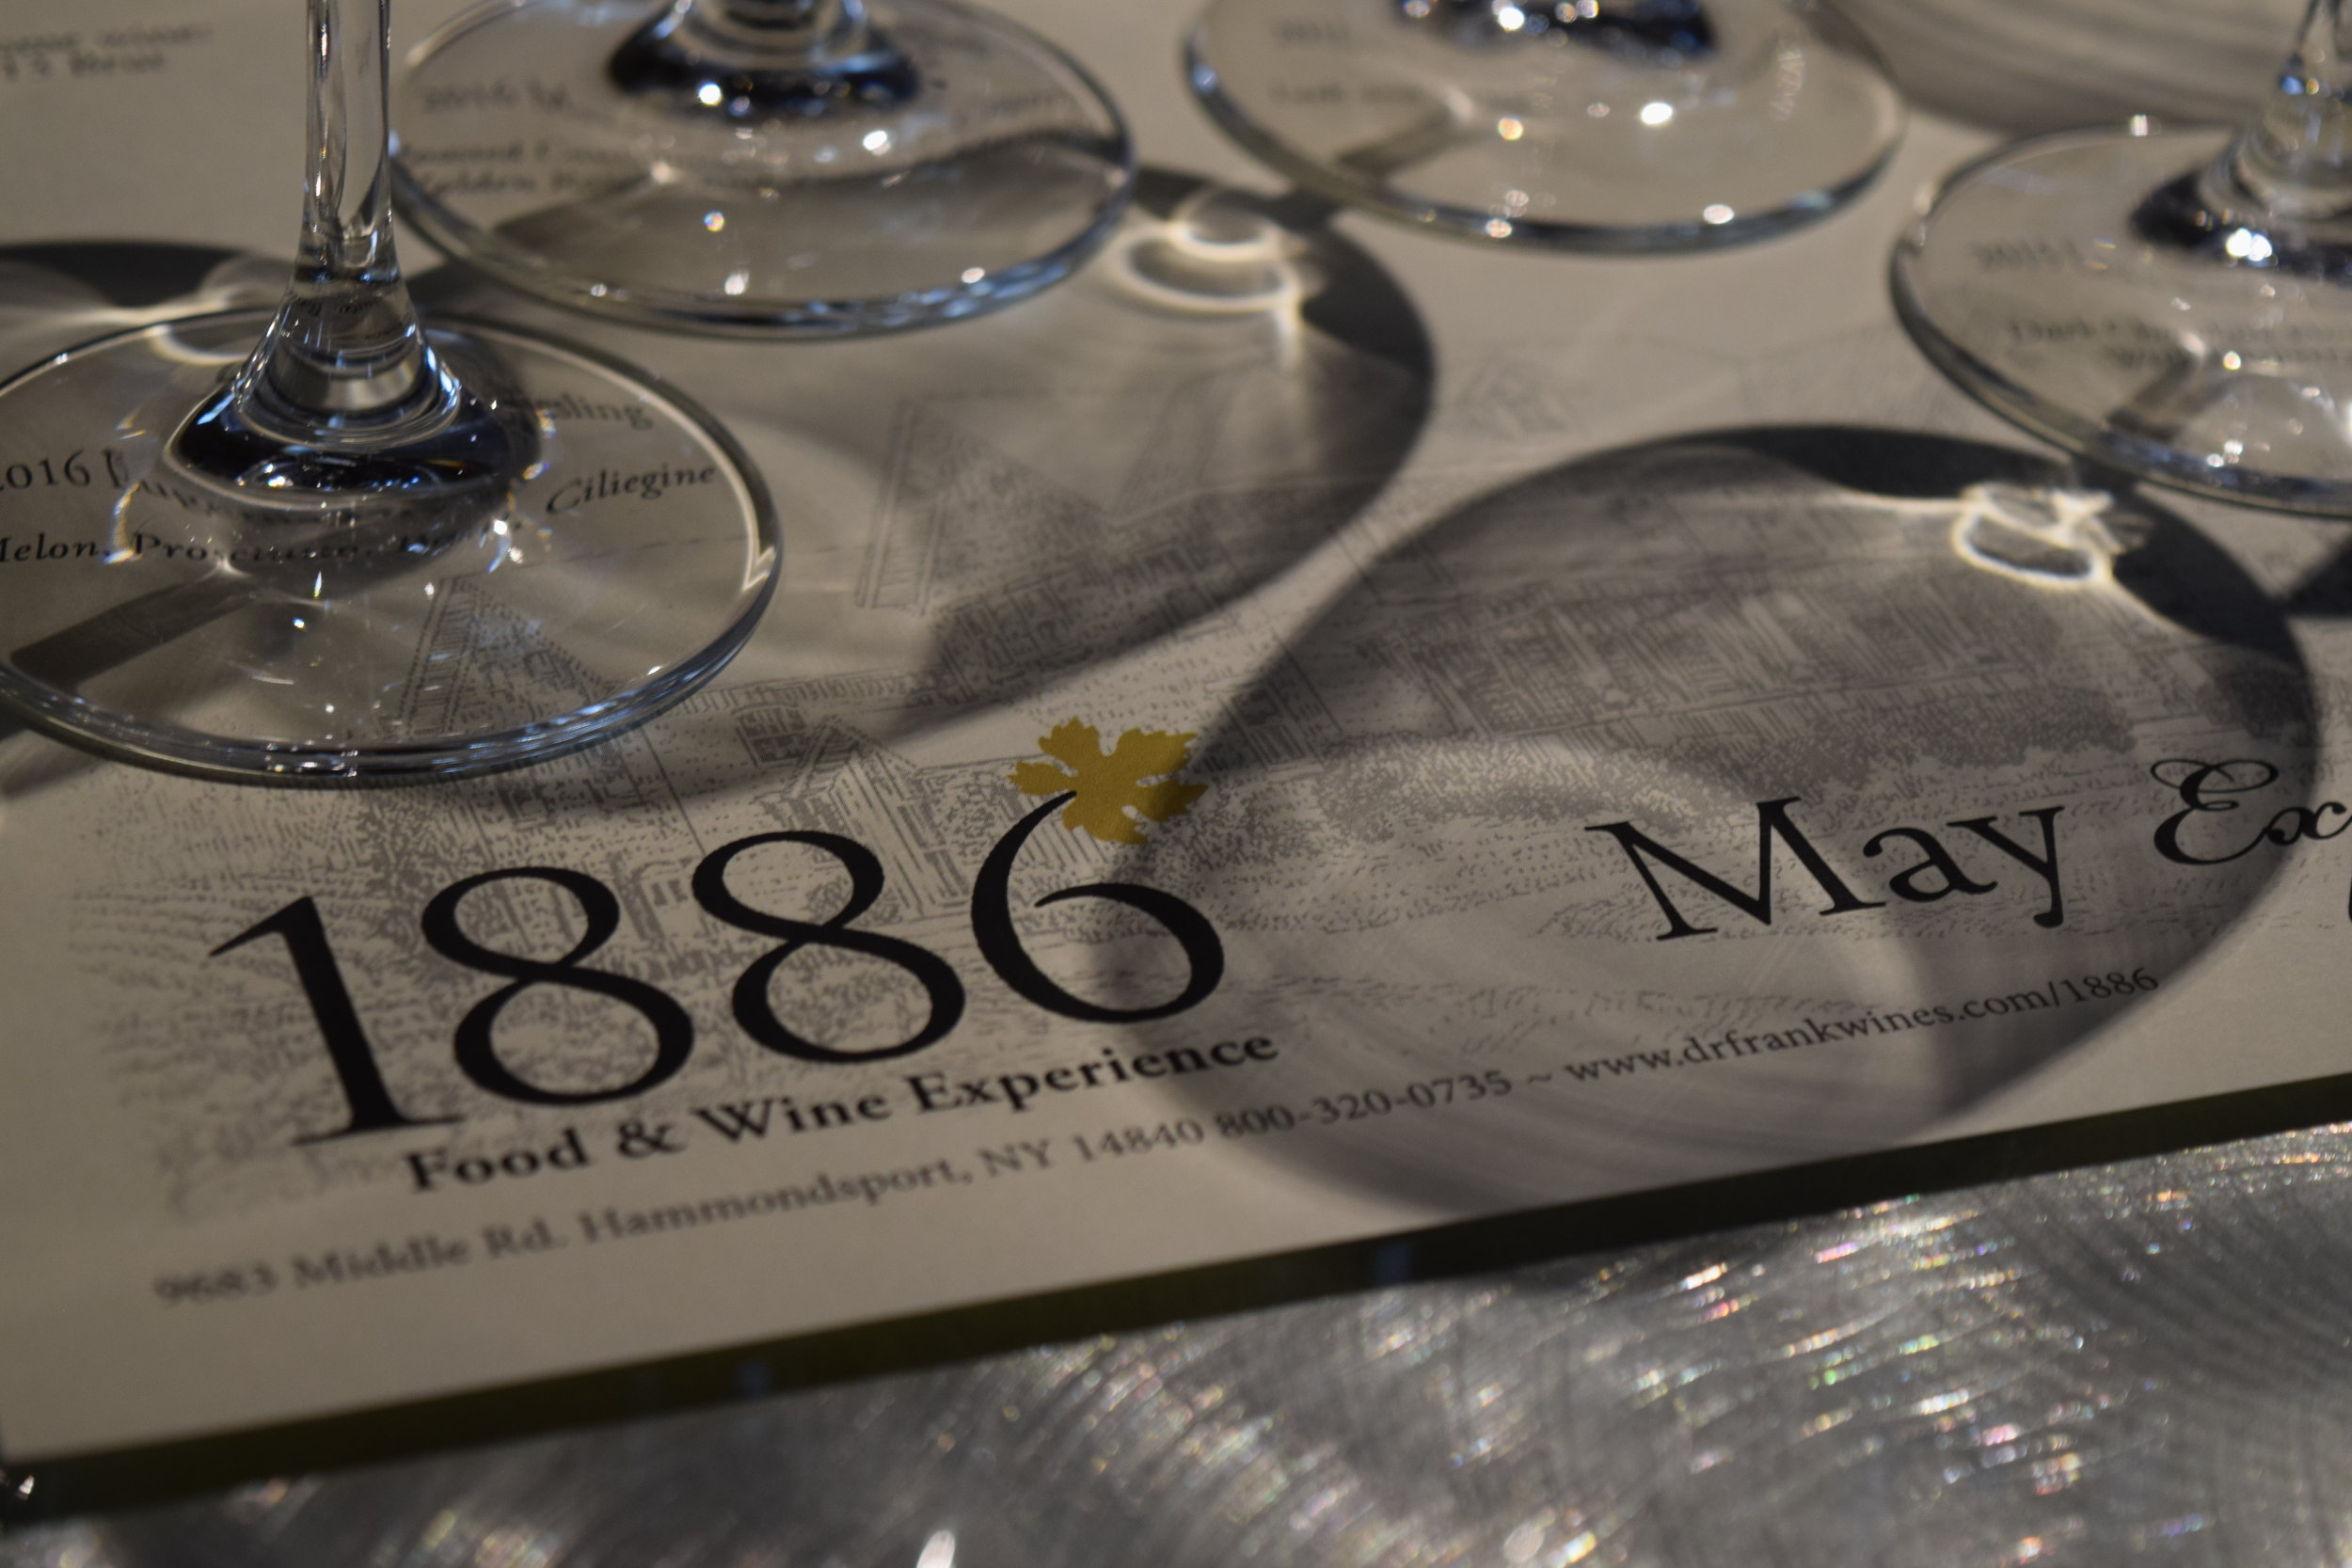 Dr. Konstantin Frank Winery's 1886 Food & Wine Experience: May 2018's Terroir Experience